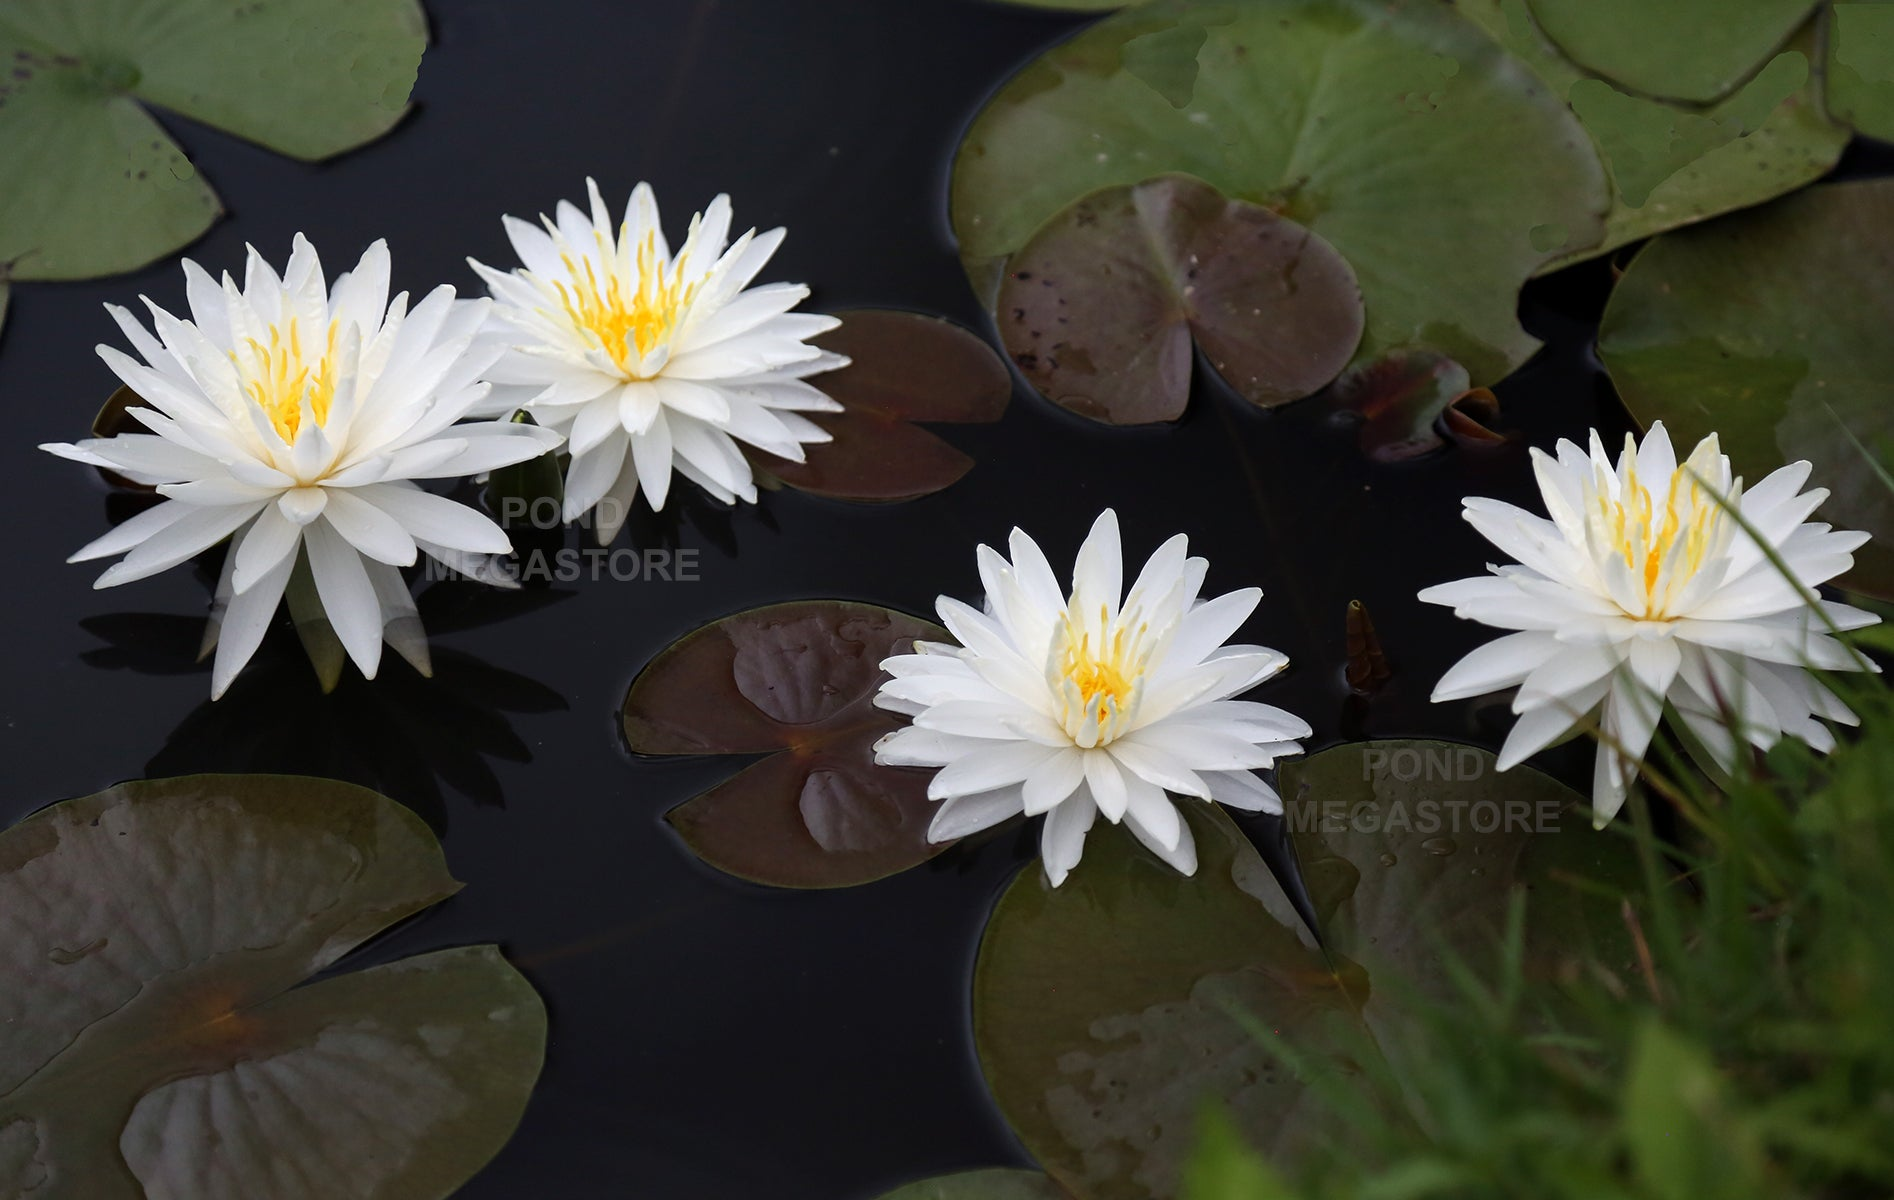 Water lilies for natural earth bottom ponds pondmegastore water lilies for natural earth bottom ponds pondmegastore waterlilies pond plants lotus izmirmasajfo